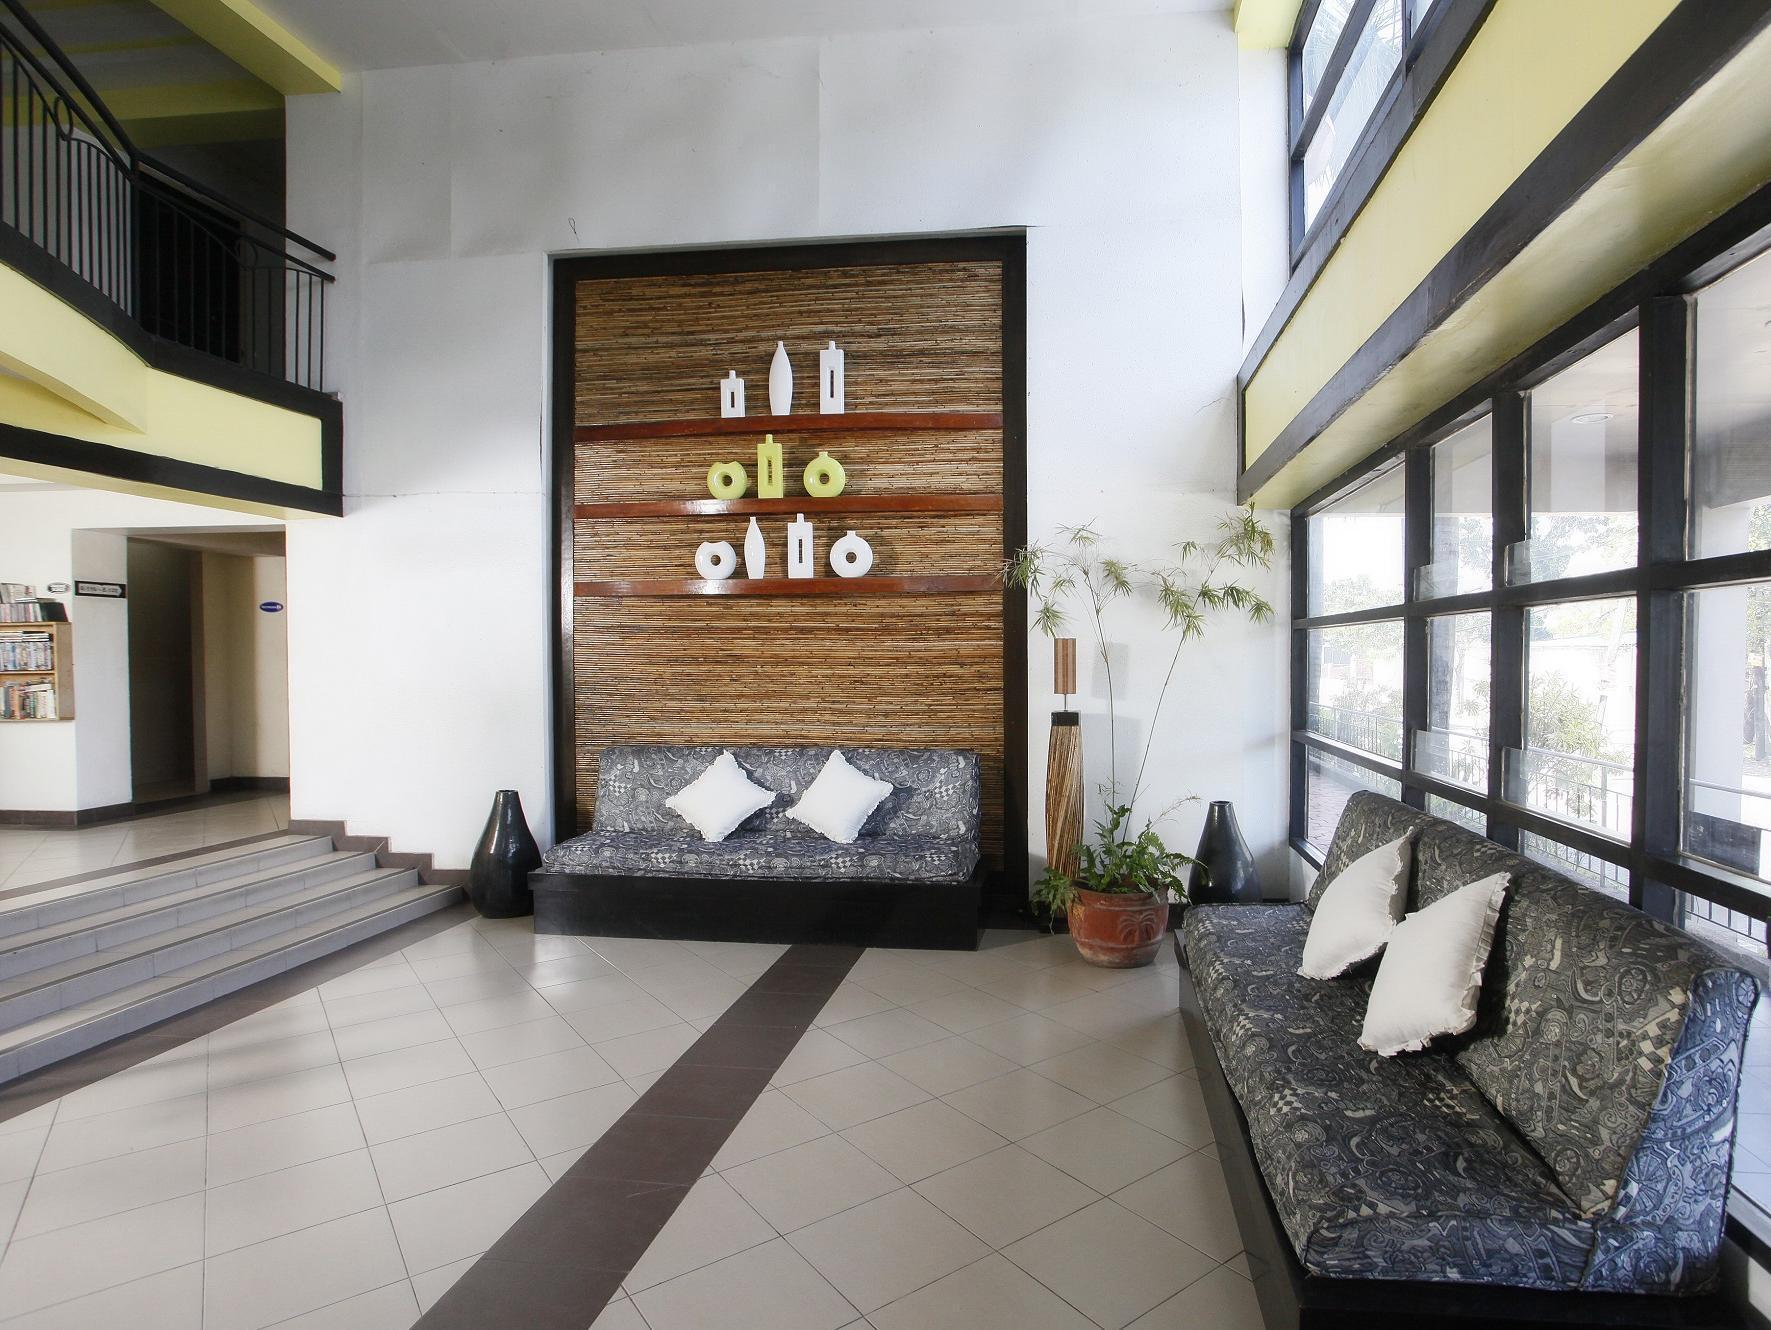 SDR Serviced Apartments Cebu - Hotellet udefra